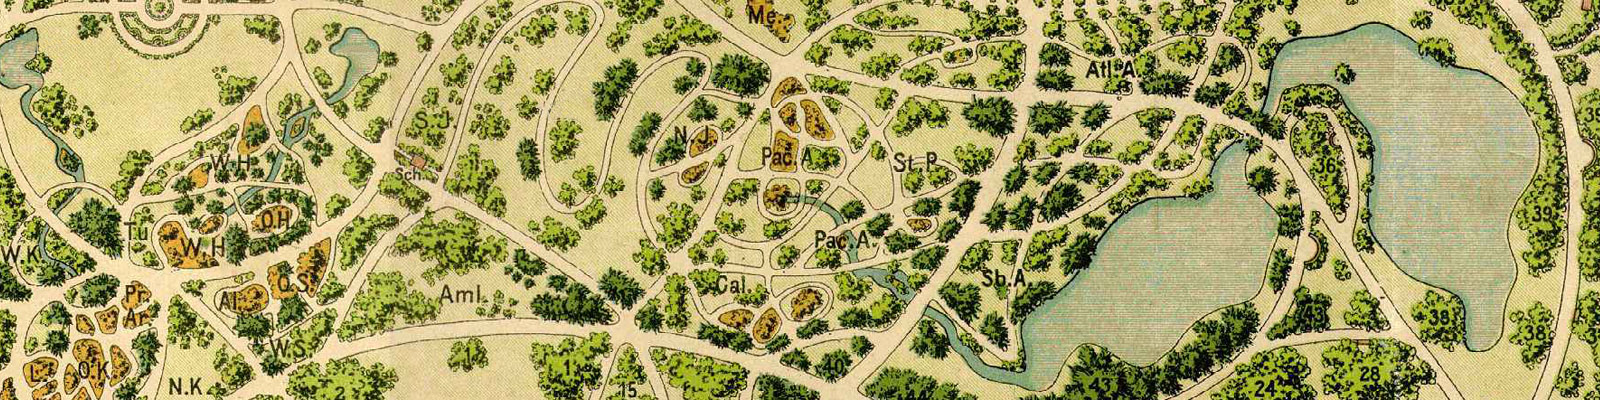 Green Parrot Gardens | Our Heritage | Traditional Garden Plan